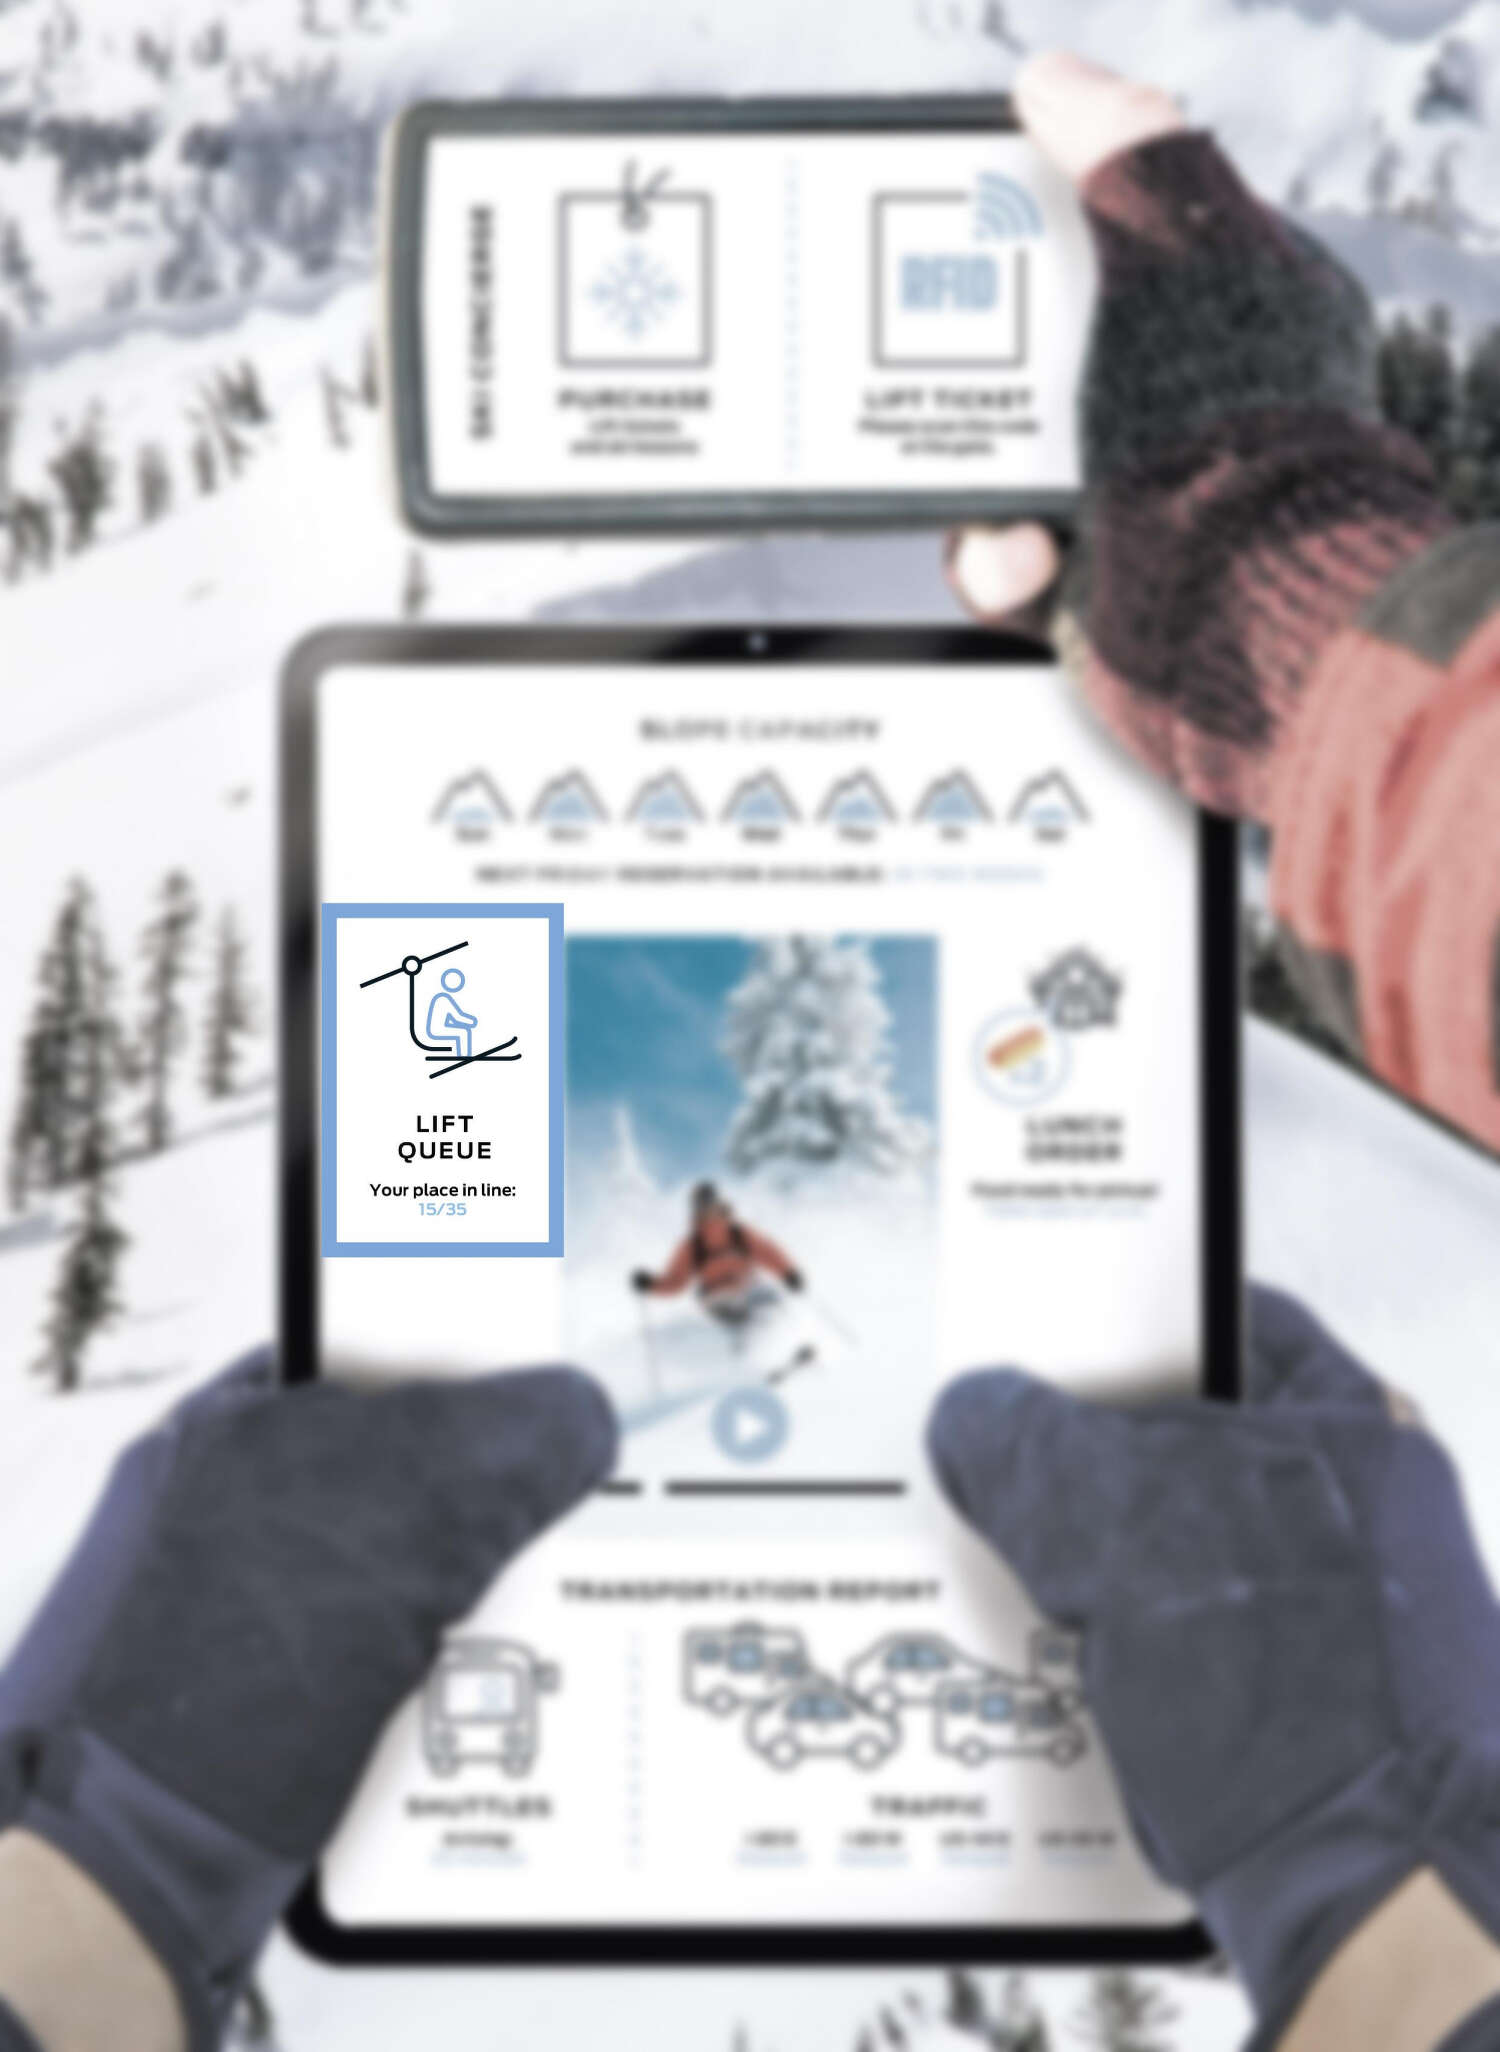 An icon of a ski lift and a skier's place in the queue is highlighted.